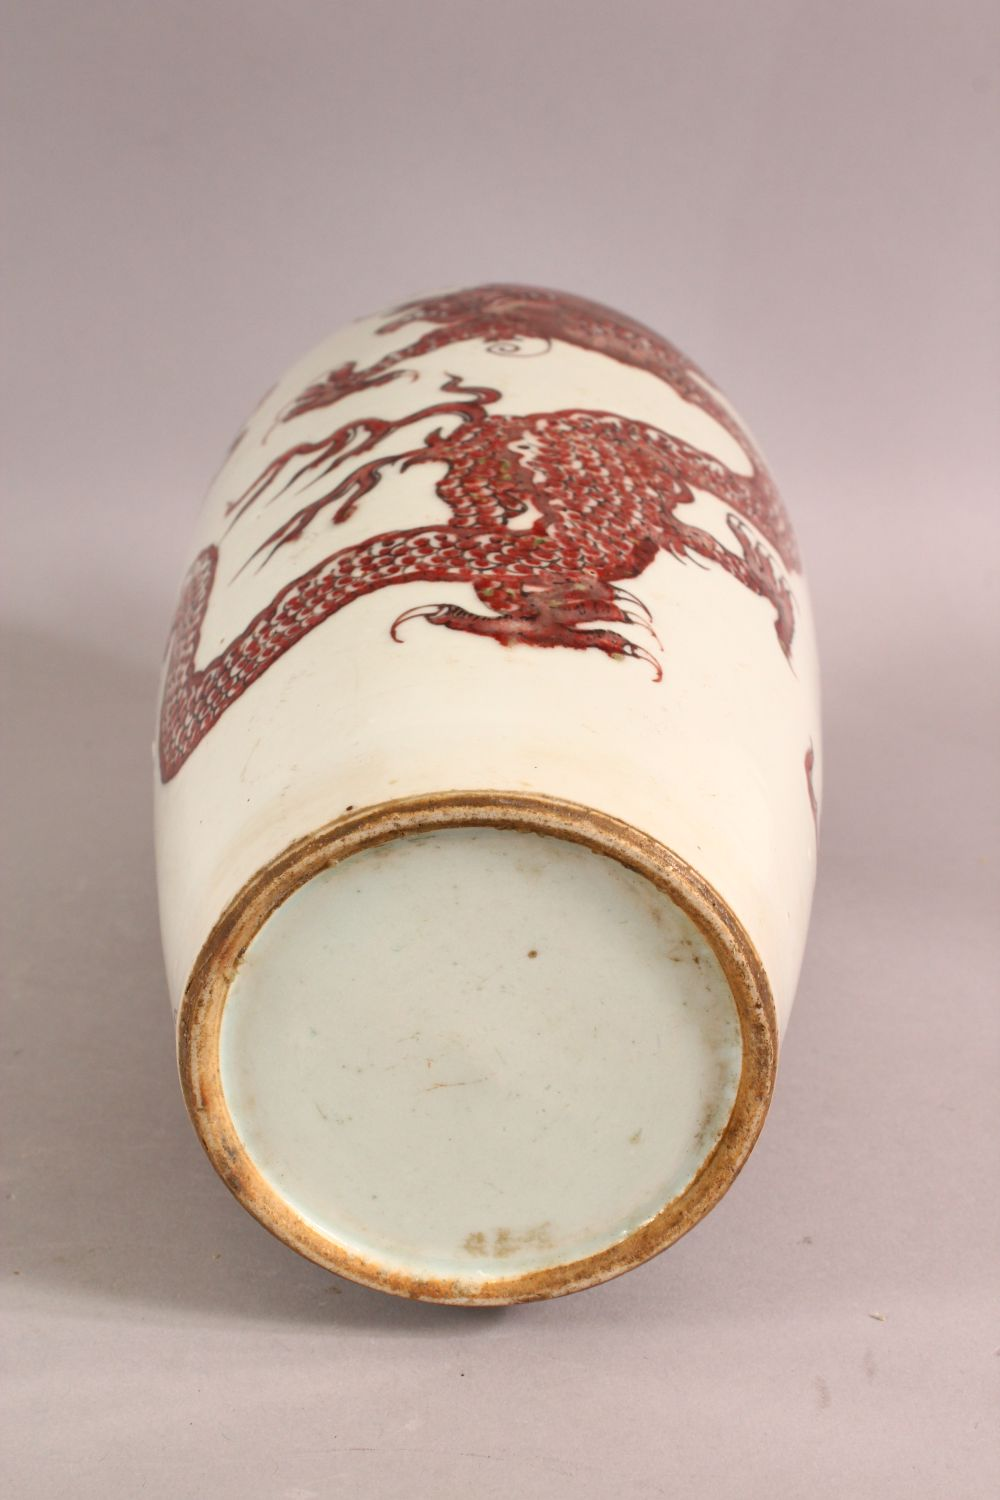 A CHINESE IRON RED DRAGON VASE, the body painted with two dragons and the pearl of wisdom, 33cm - Image 6 of 6